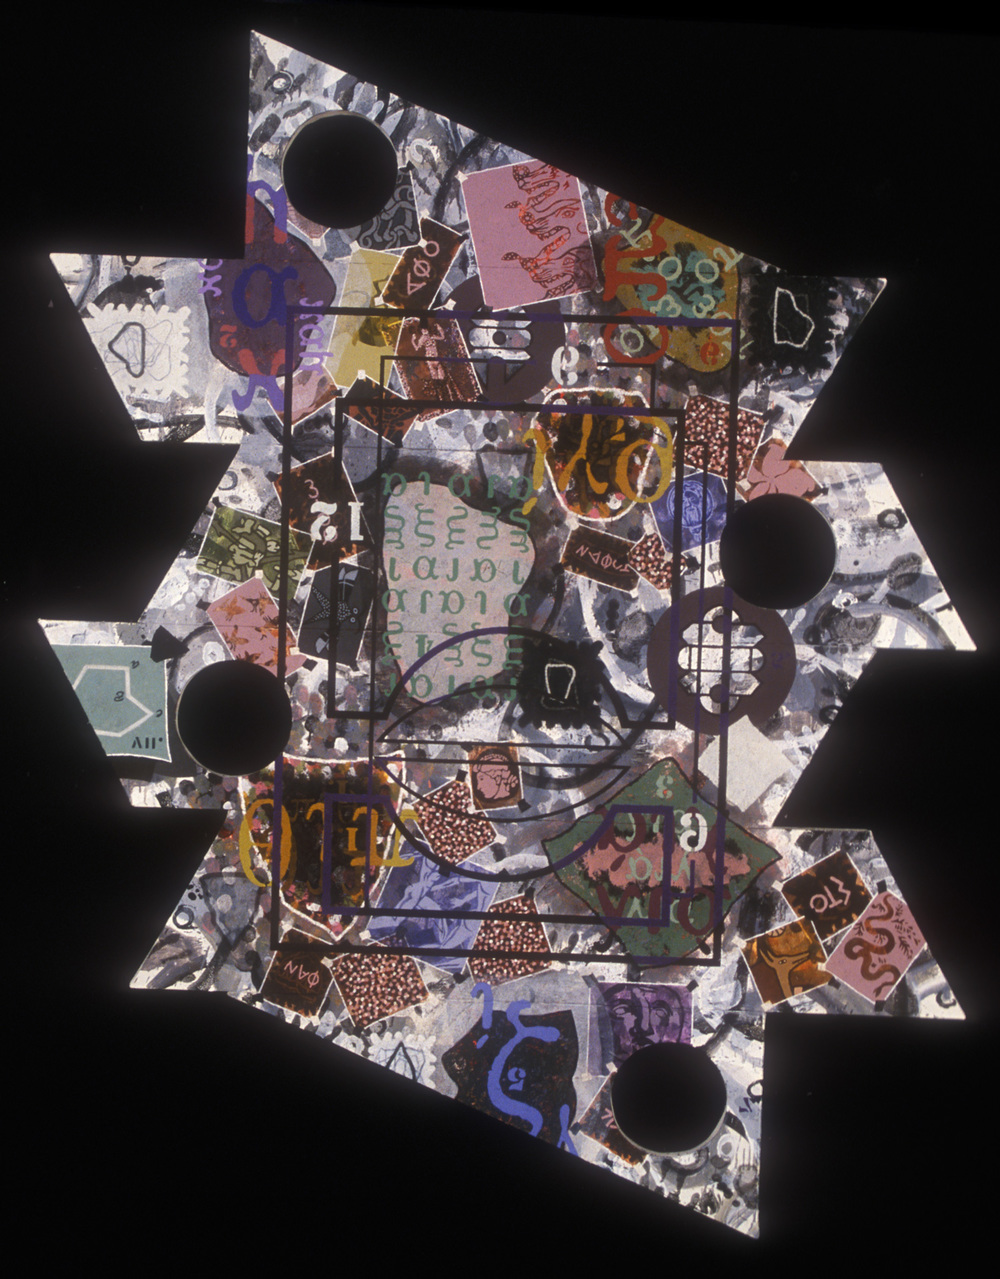 Sins  , 1993, oil, wax, and charcoal on canvas, 120 x 76 in.